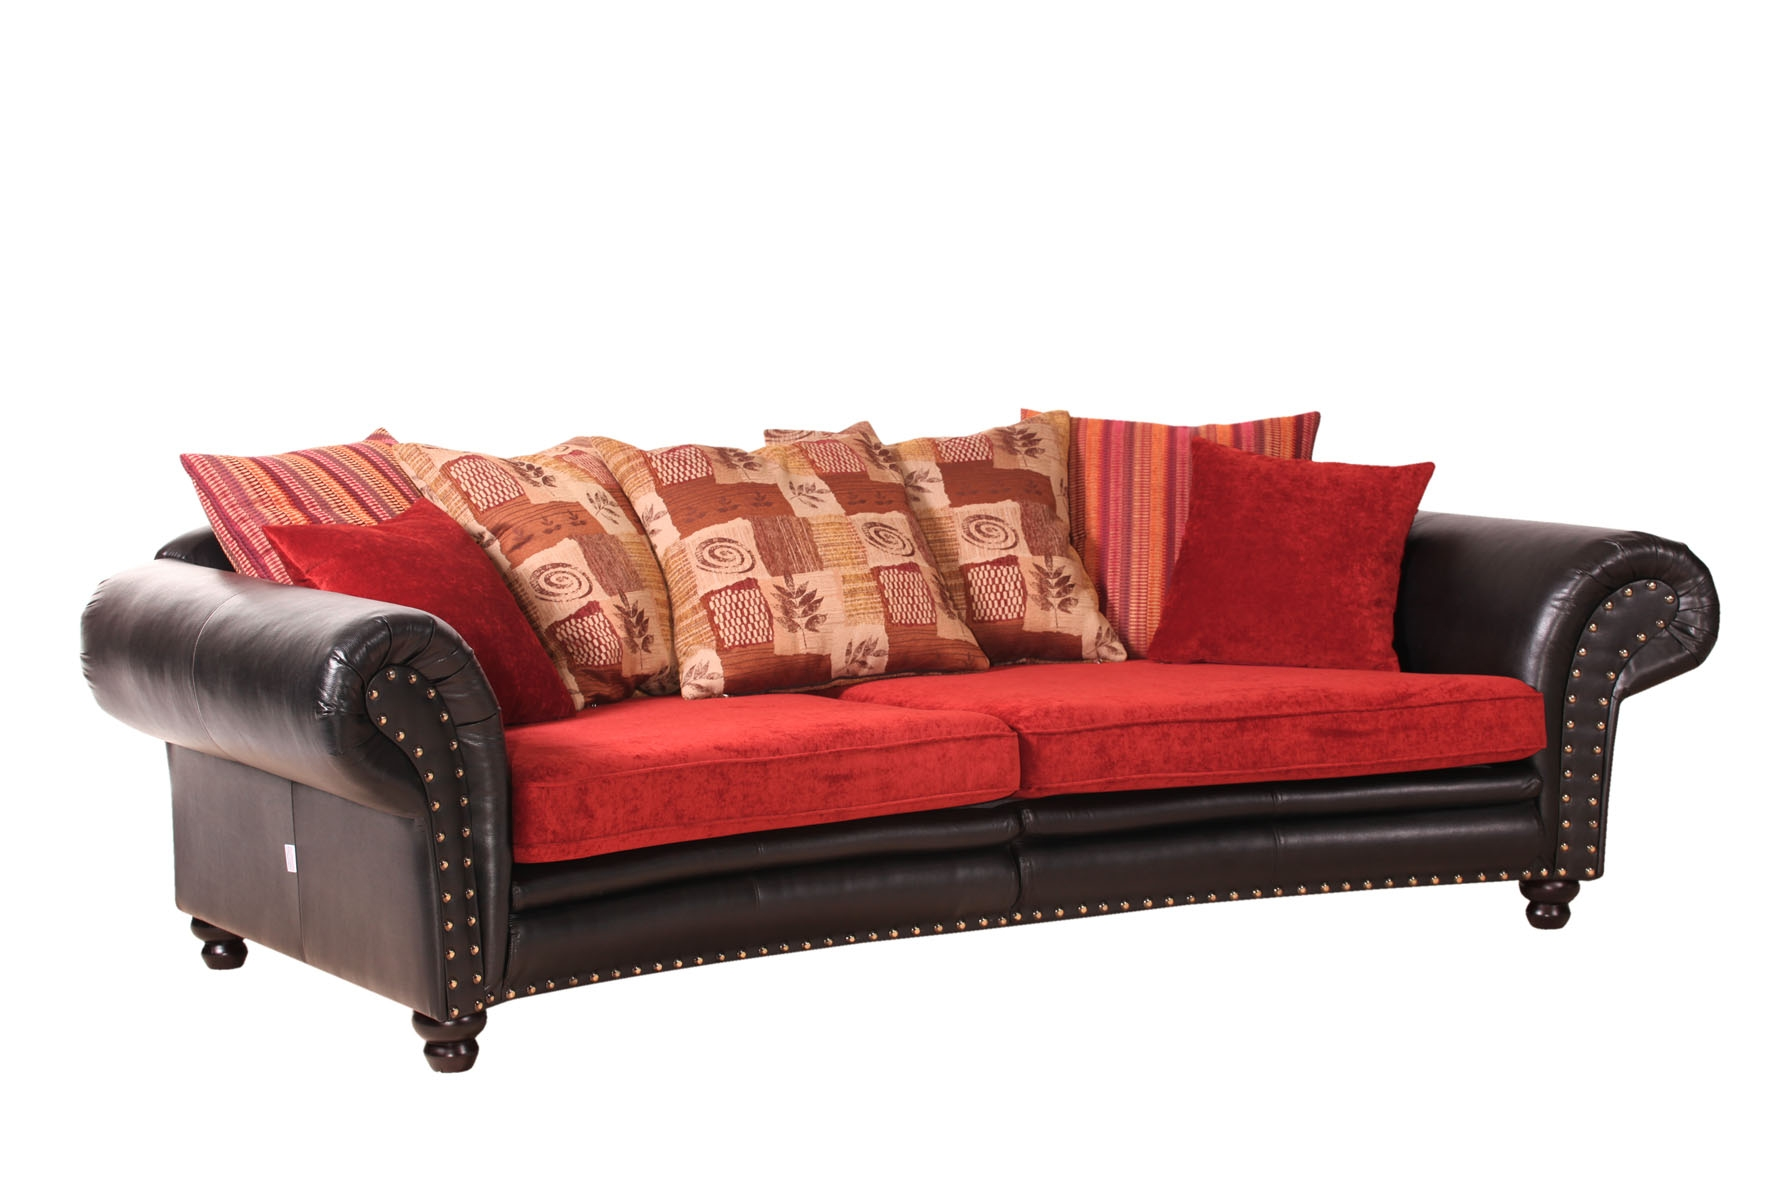 Big Sofa Colonial Mega Sofa Big Sofa Colonial Living Megasofa Megasofas